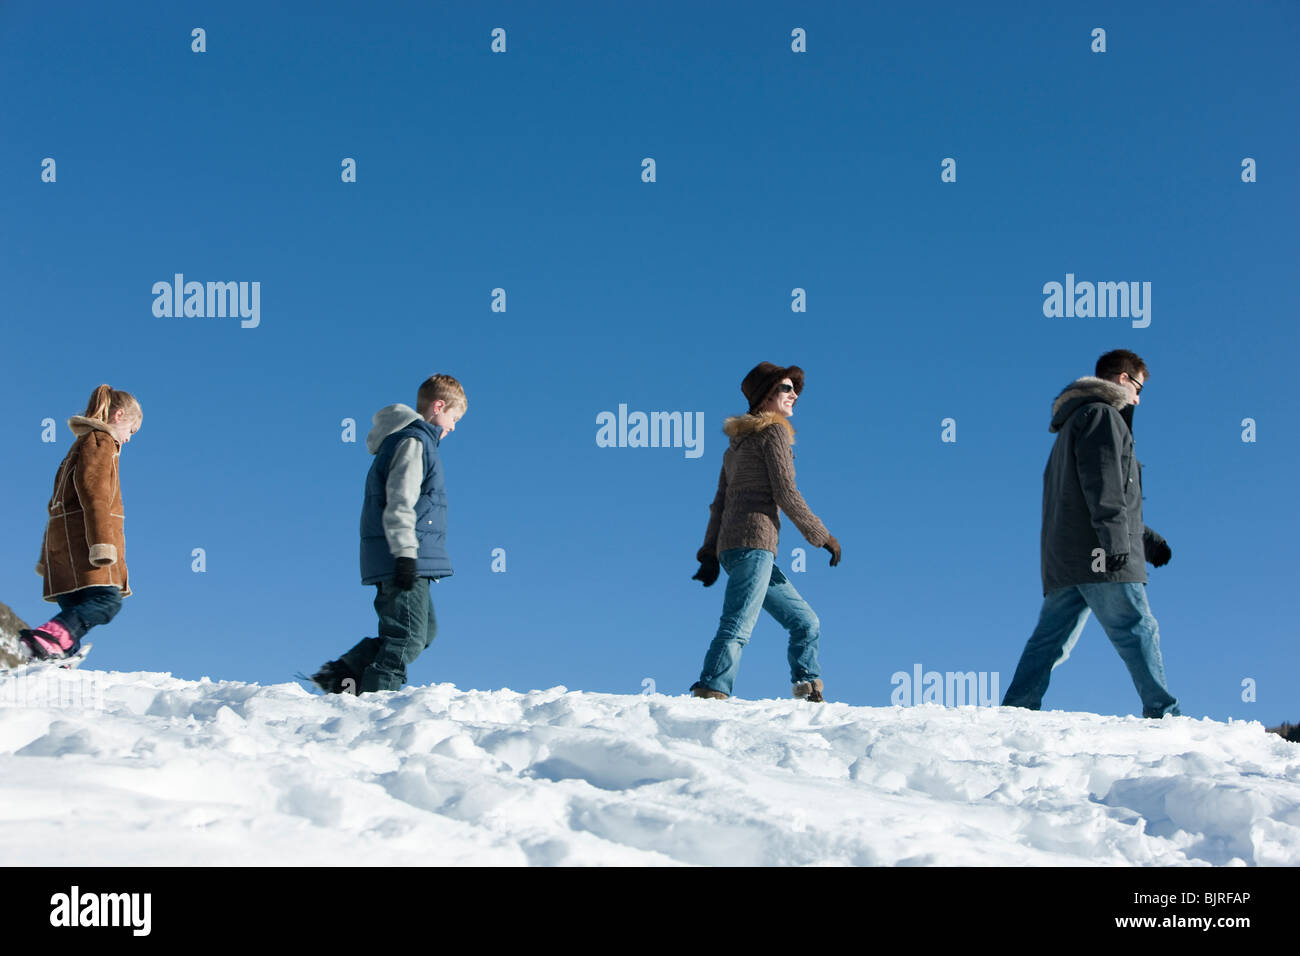 USA, Utah, Big Cottonwood Canyon, family walking in snow Stock Photo